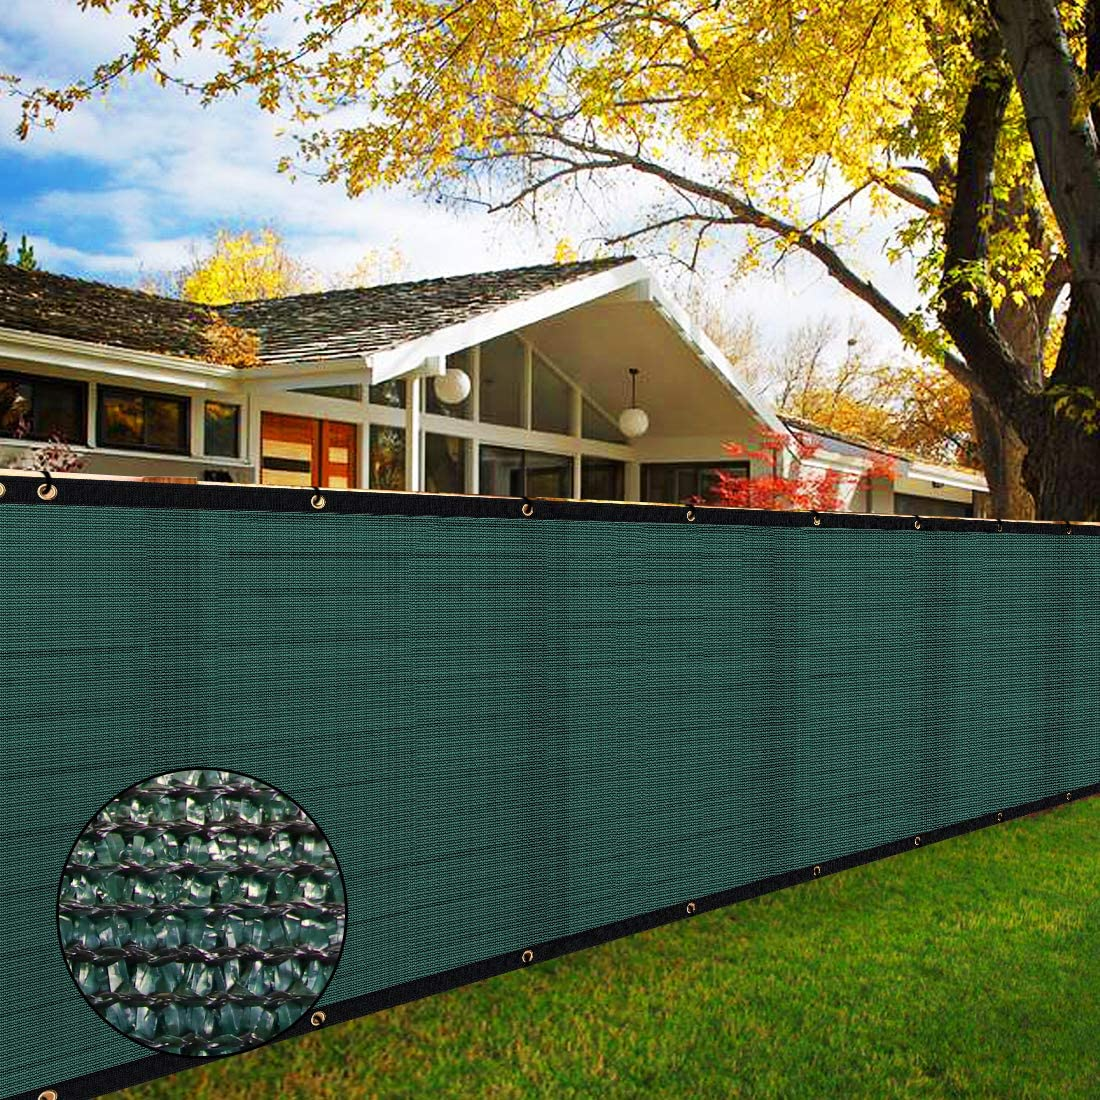 6' x 50' Heavy Miami Mall Duty Privacy Screen Mes Challenge the lowest price of Japan ☆ Blockage Fence Green 90%